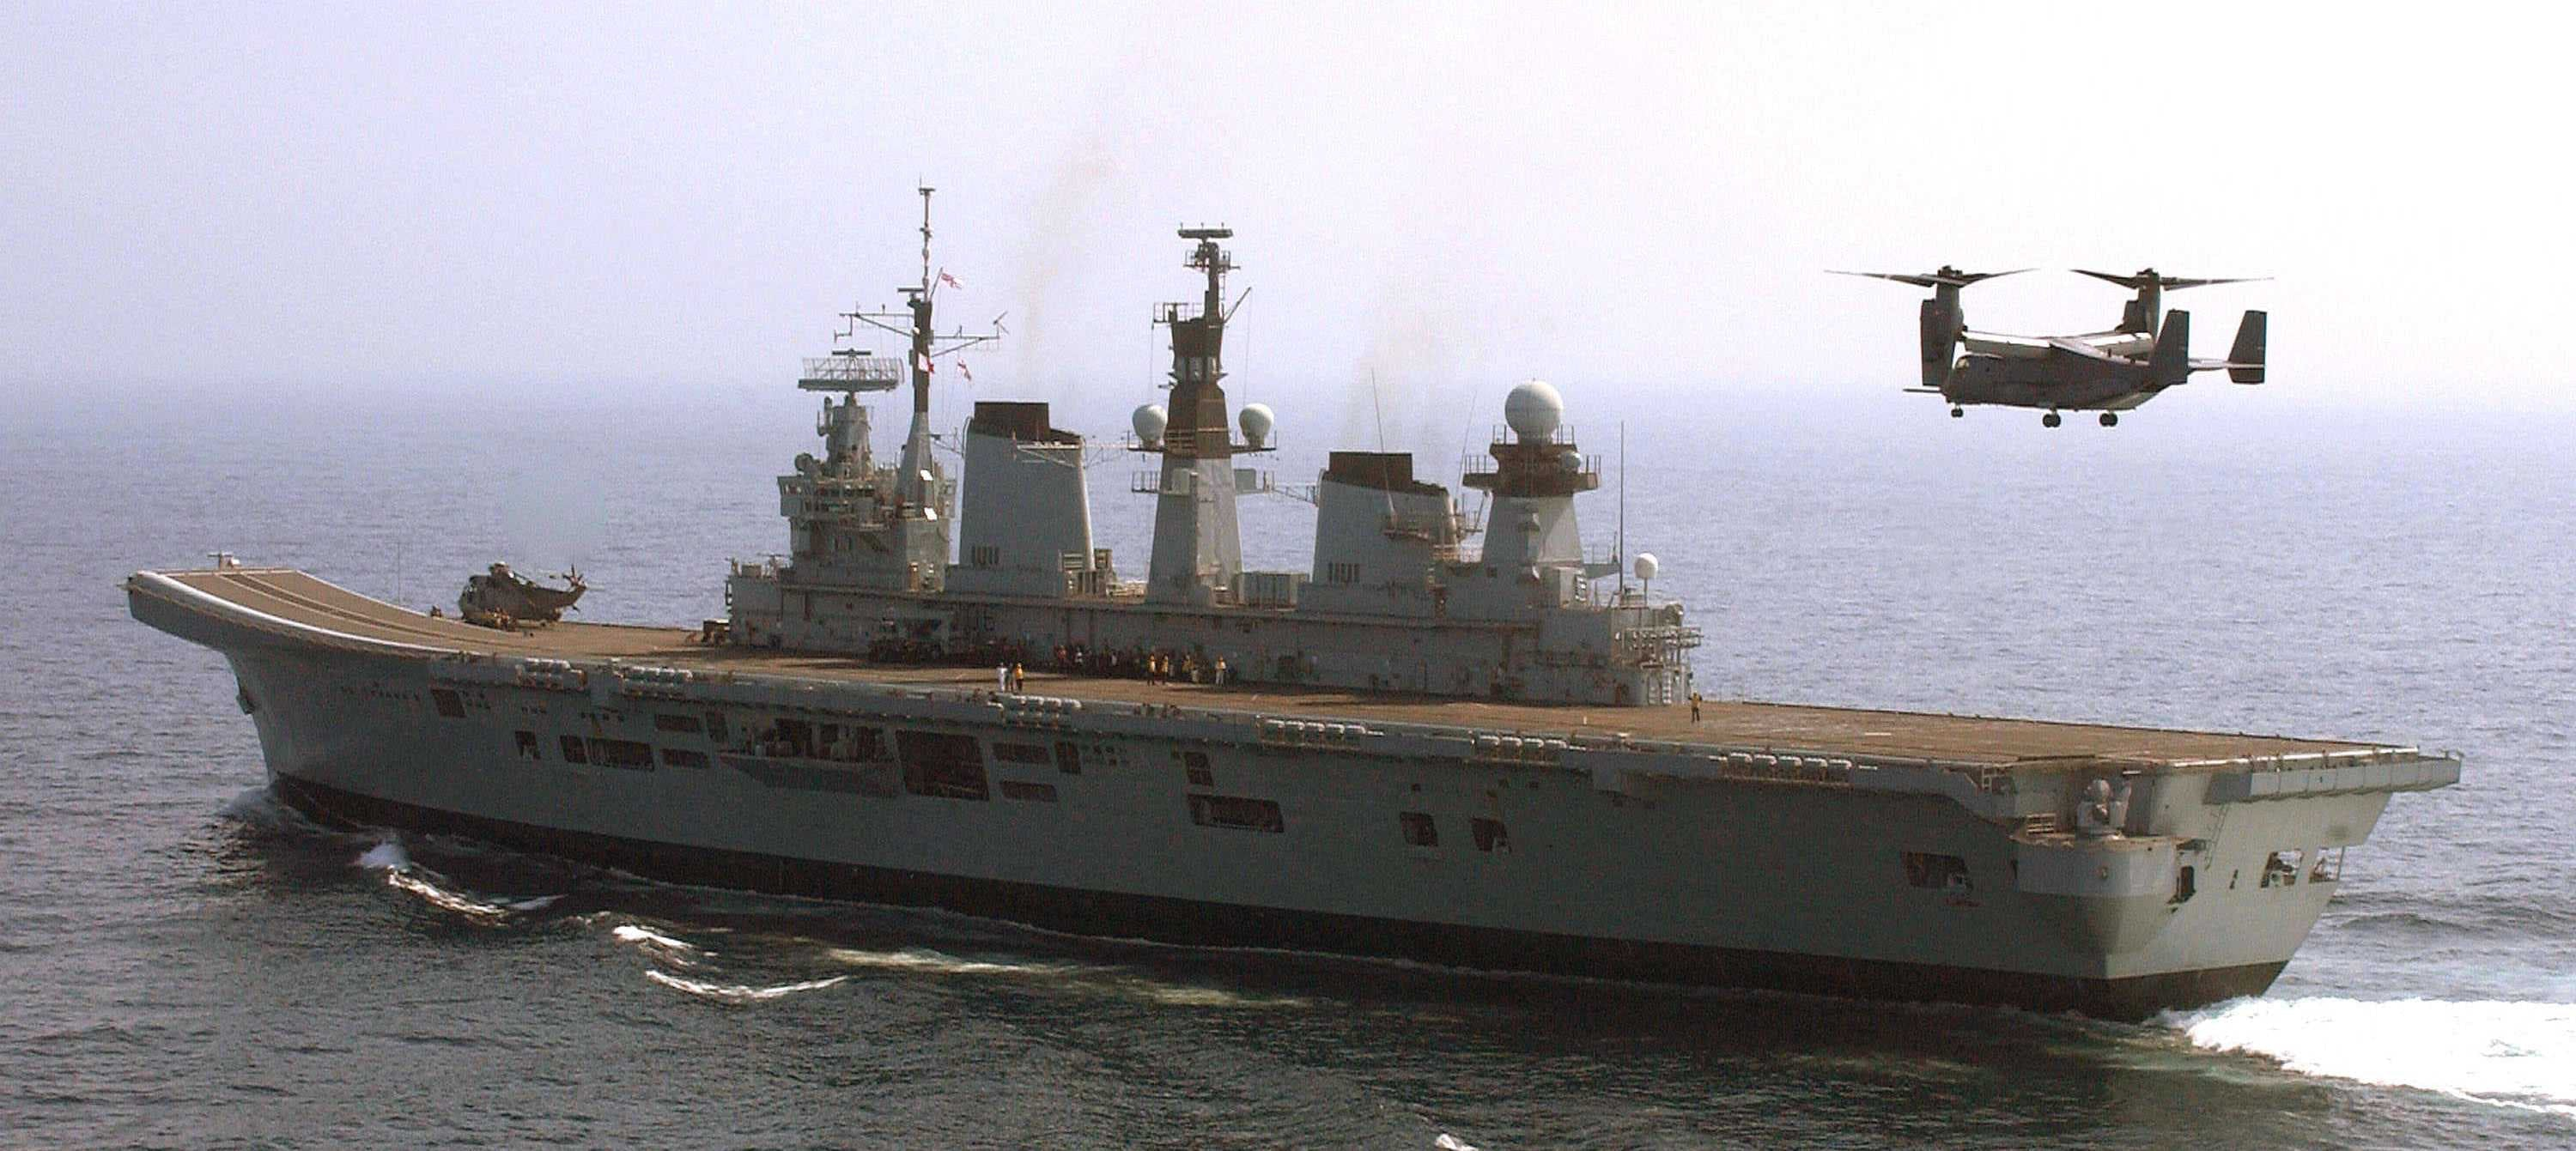 HMS Illustrious took part in V-22 trials.